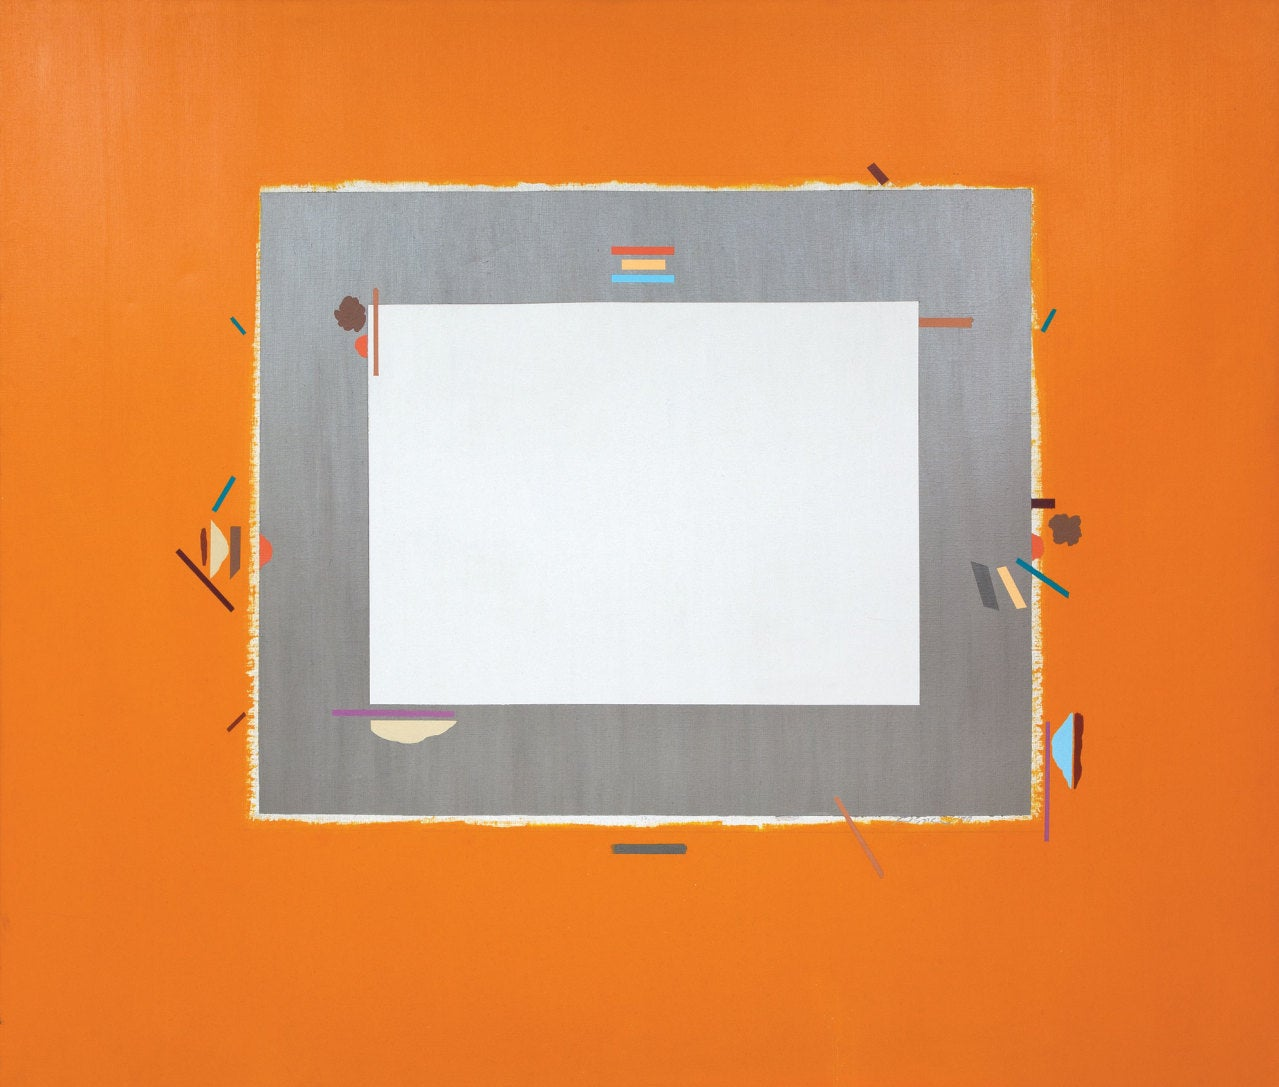 Carole eisner chroma 2 painting for sale at 1stdibs for Chroma mural paint